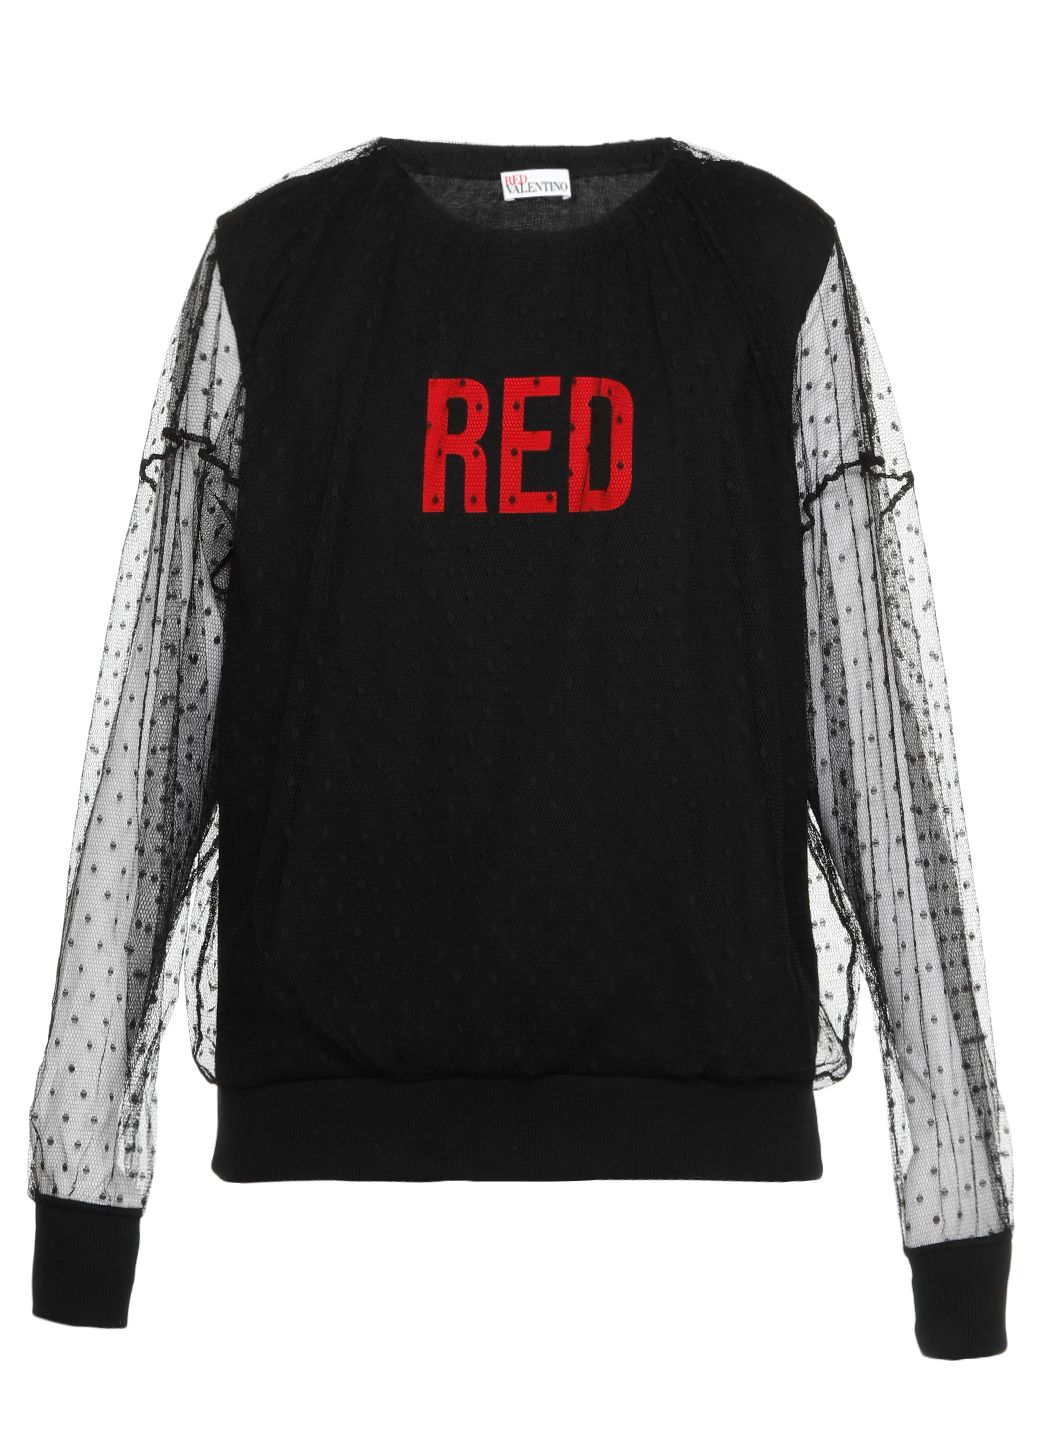 Felpa stampa RED con tulle